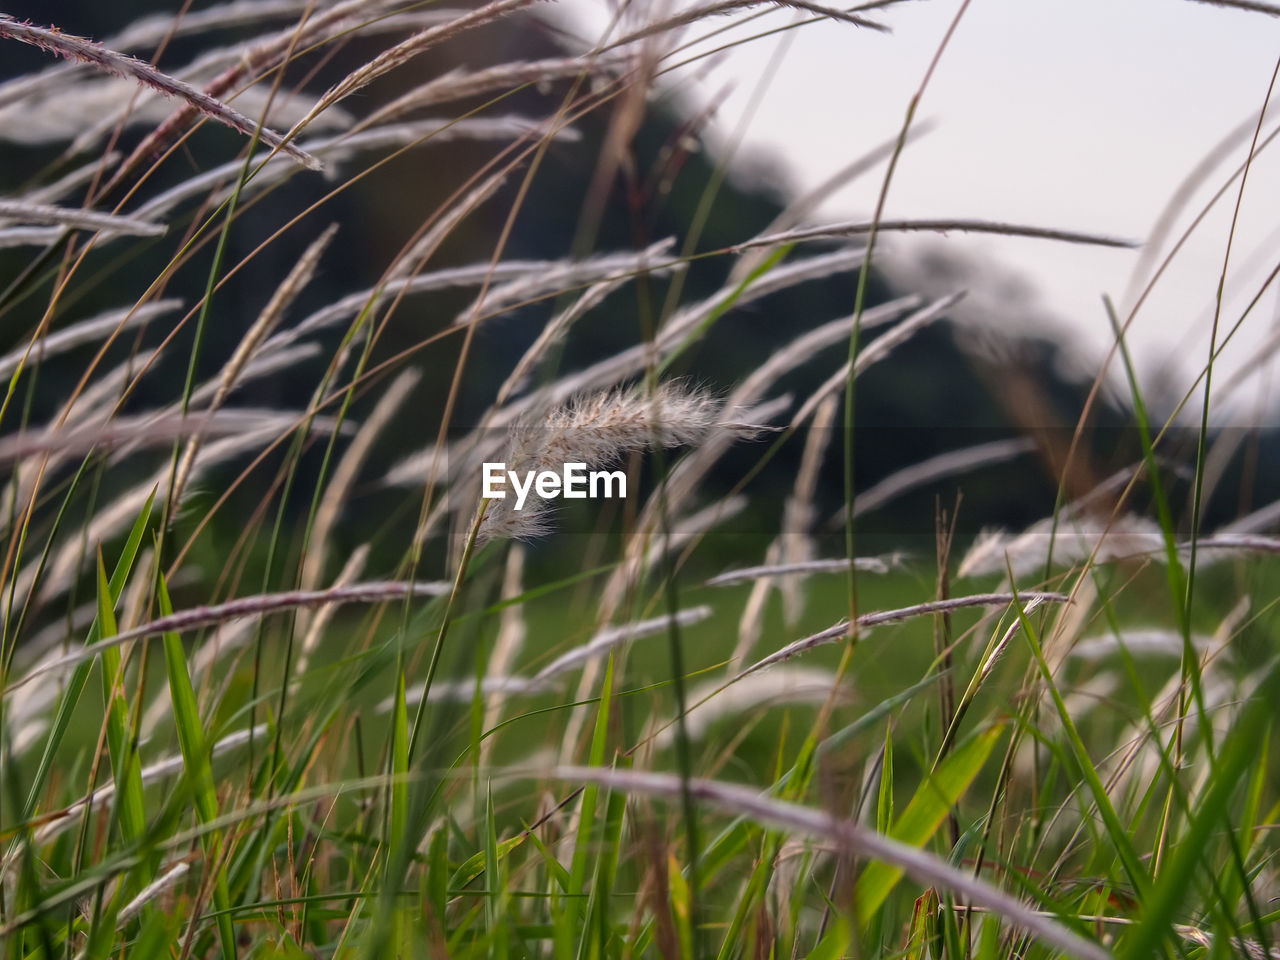 plant, one animal, animal themes, grass, animal, growth, no people, nature, mammal, selective focus, land, vertebrate, day, field, animal wildlife, feline, close-up, animals in the wild, focus on foreground, green color, outdoors, blade of grass, whisker